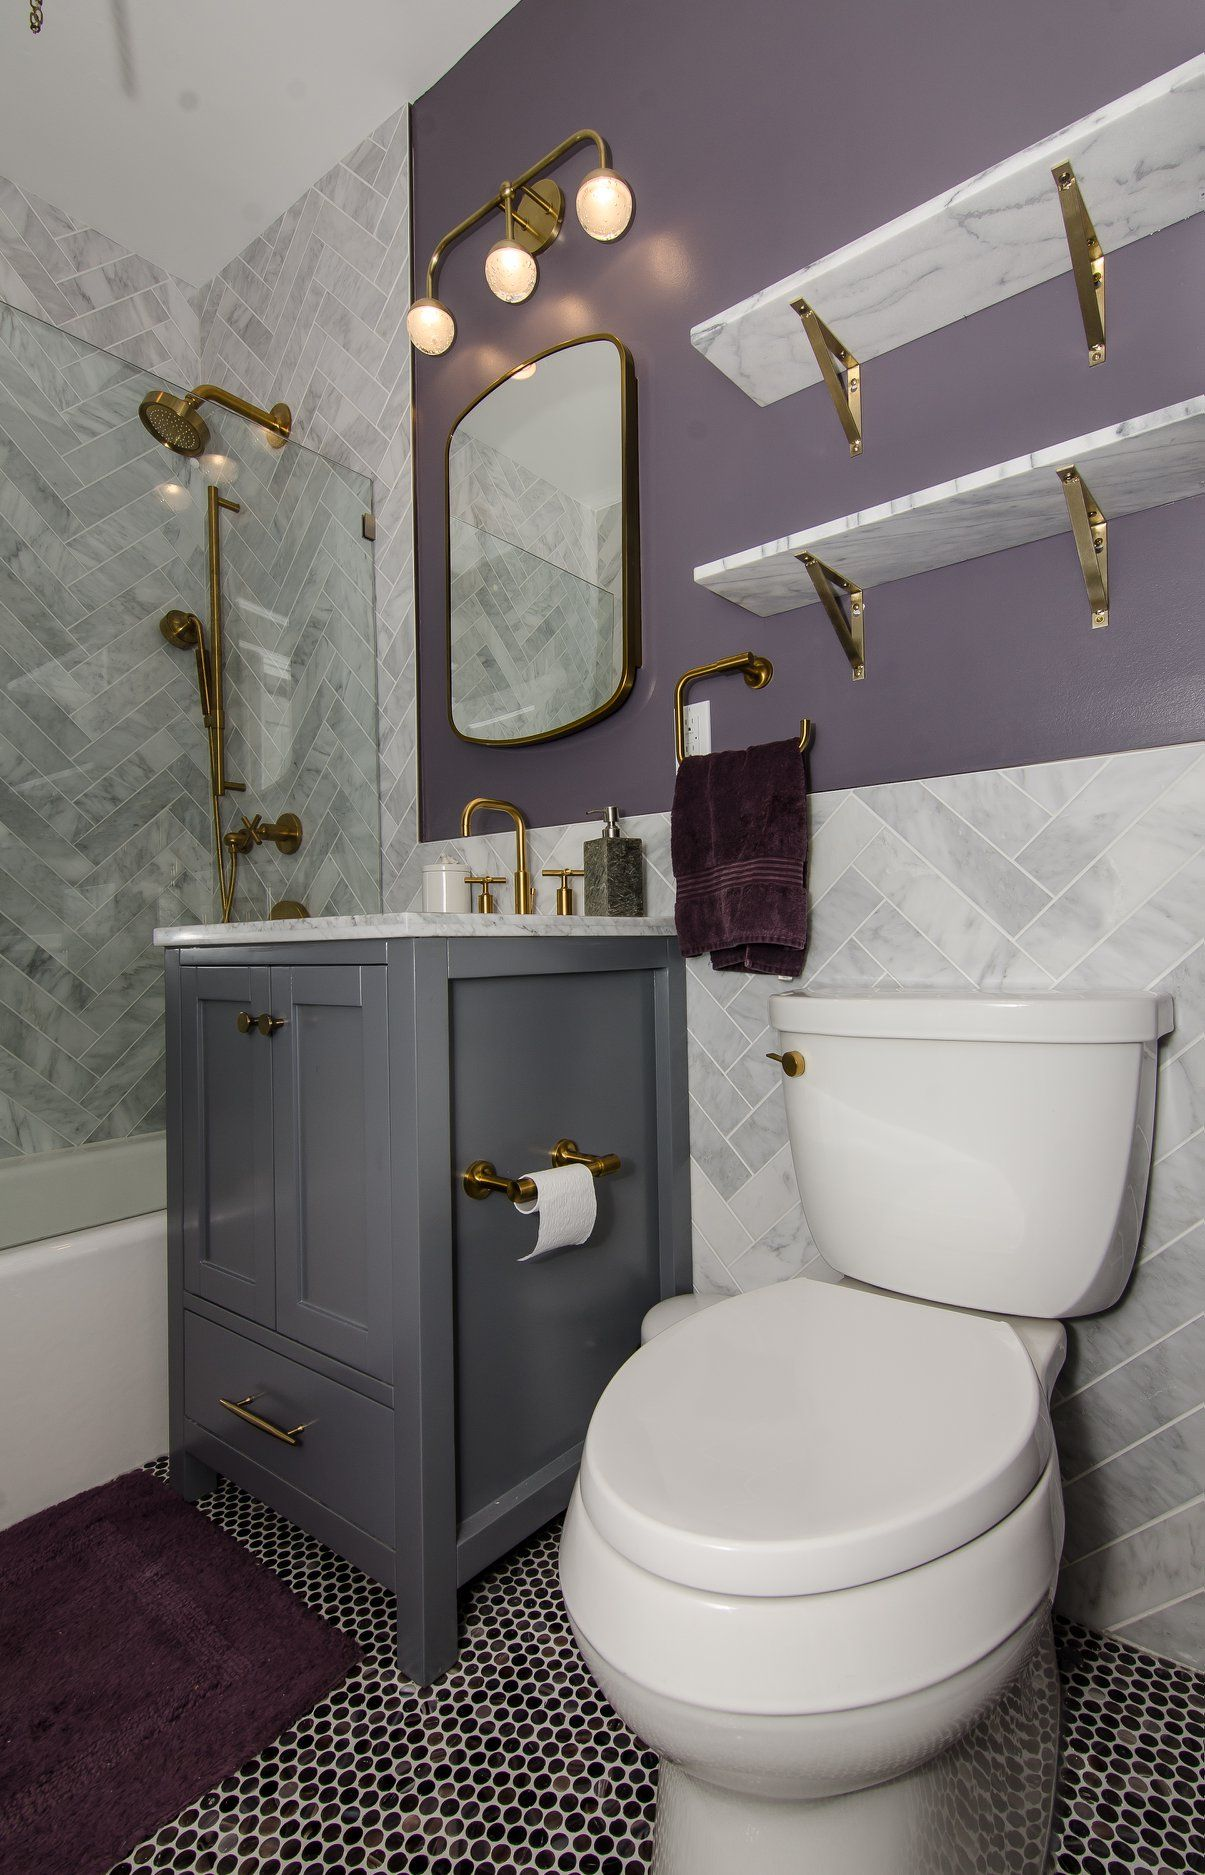 The Tile And Pattern Of This Sustainable Bathroom Remodel Was The Result Of A Collaboration Betwee Plum Bathroom Home Interior Design Interior Design Styles